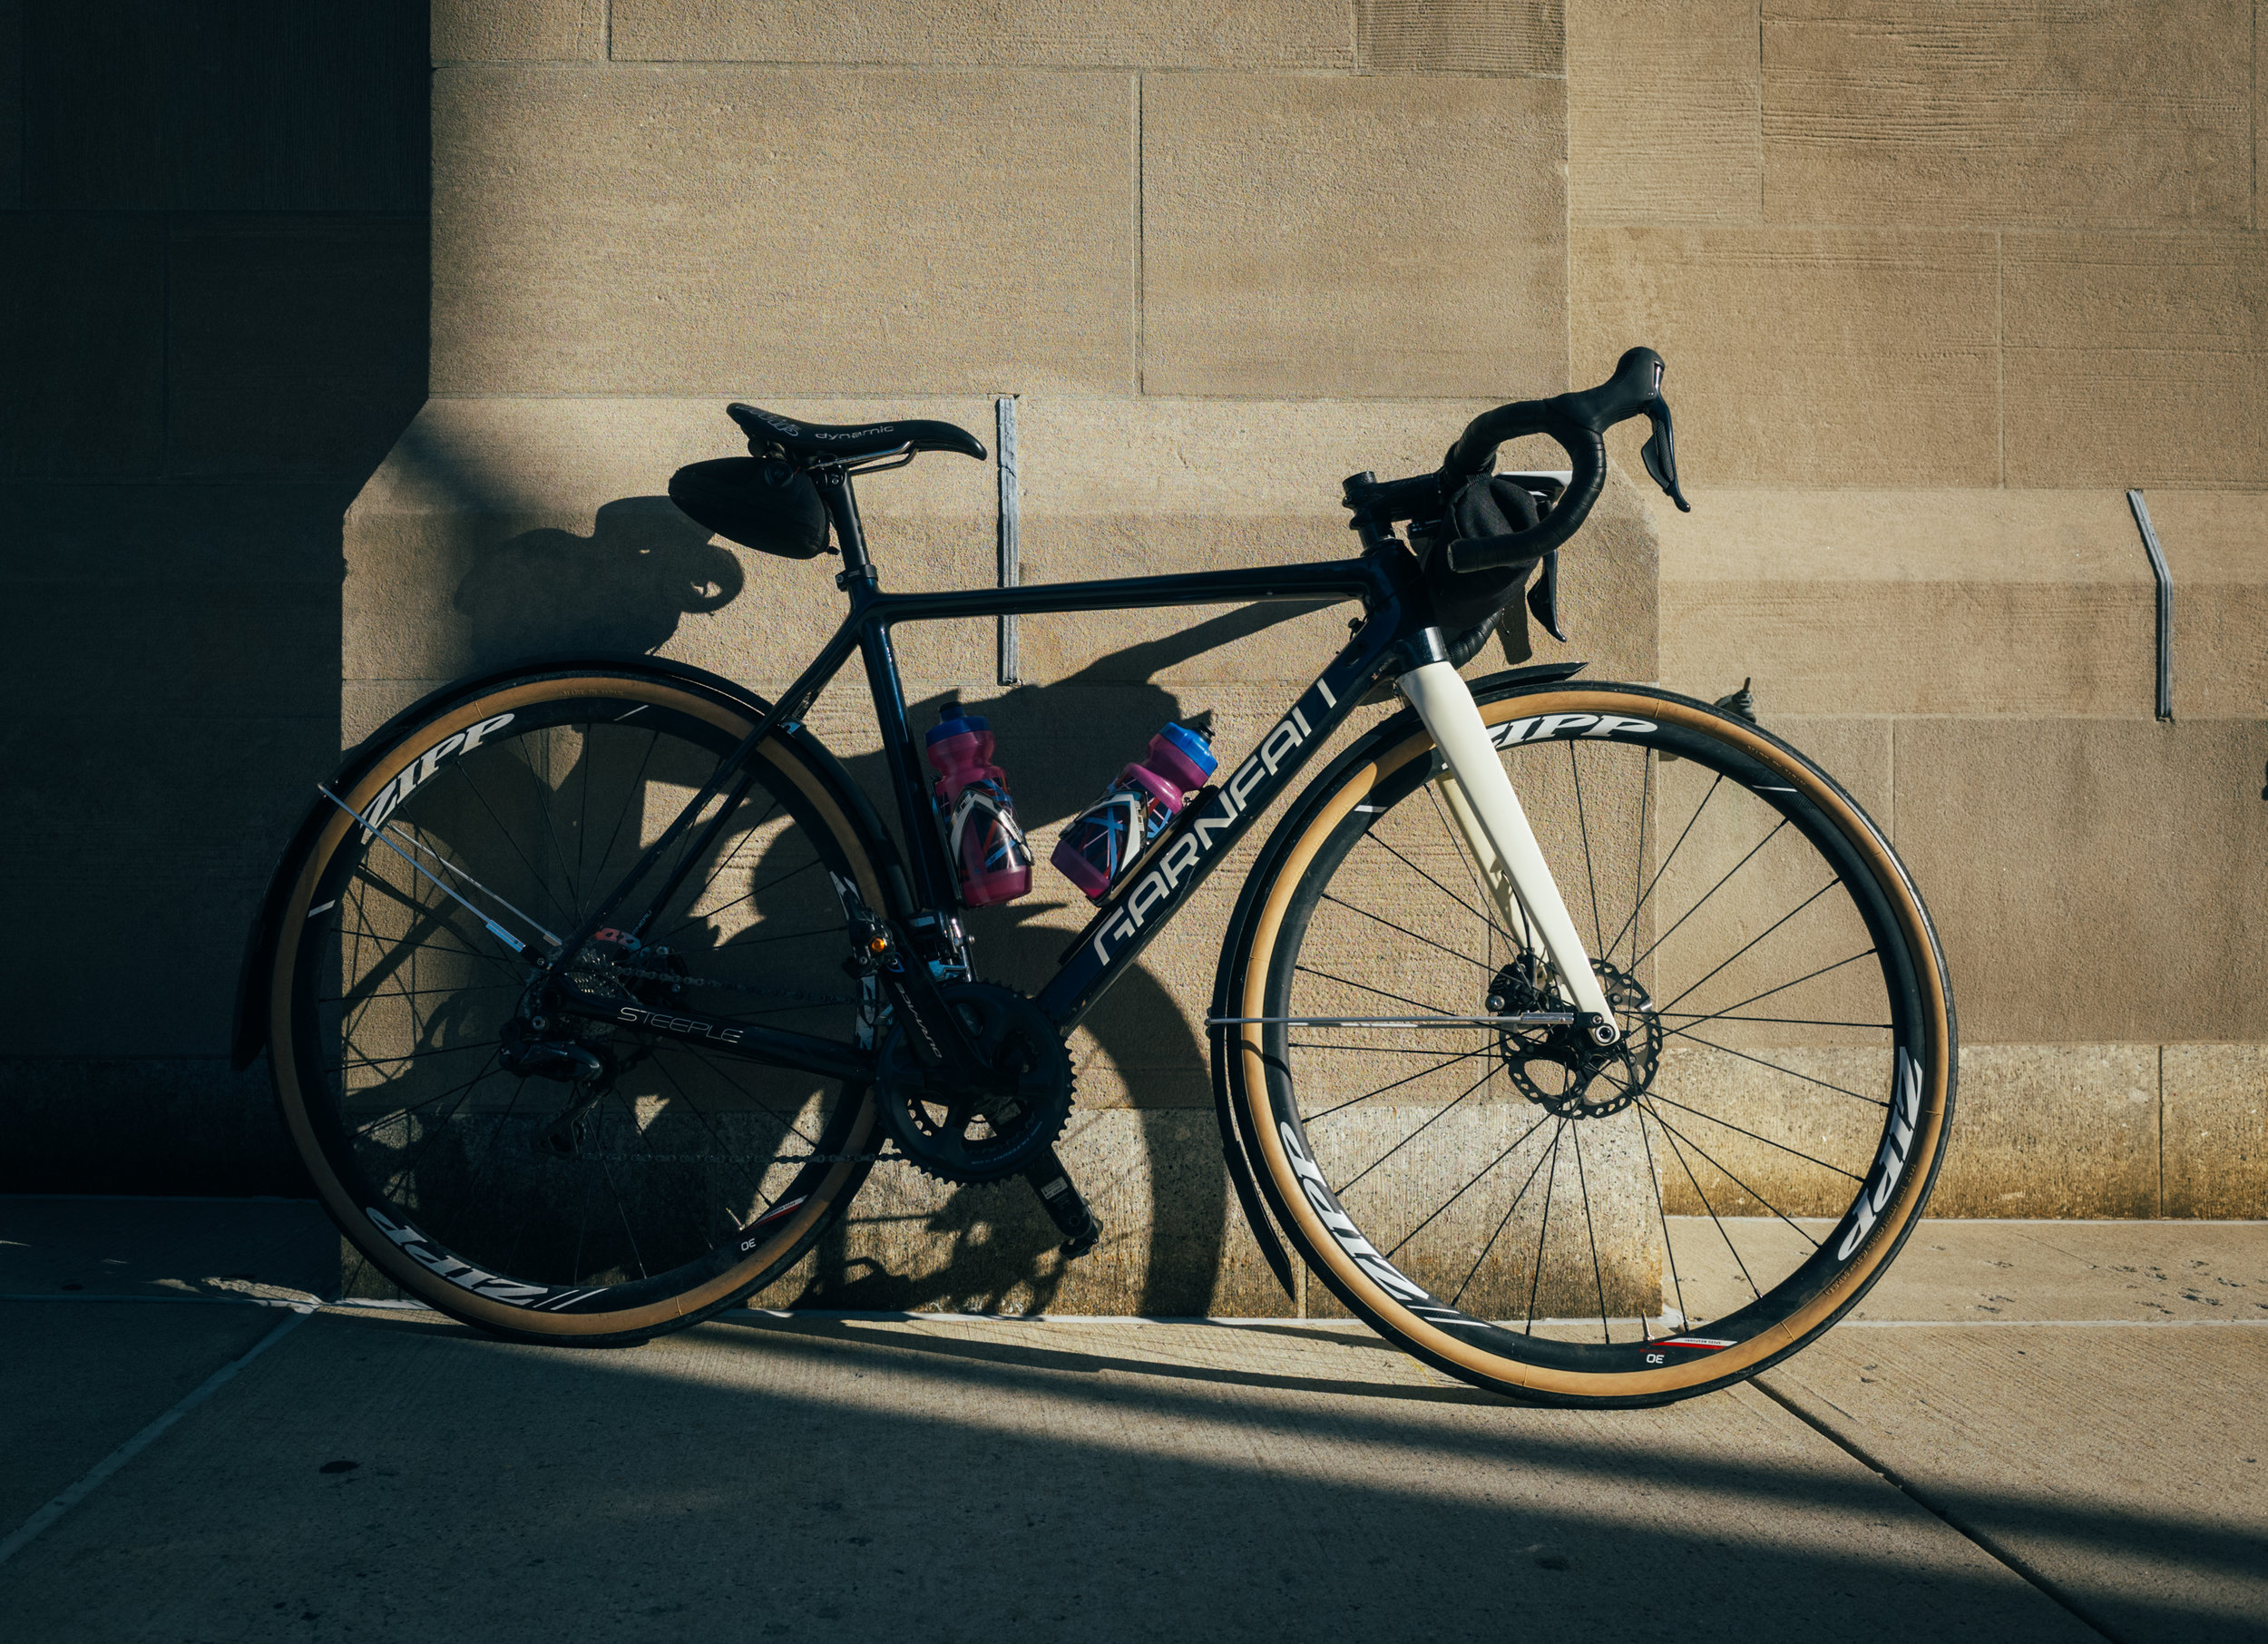 Until  our new Moots  arrive (what is the plural of Moots? Mootses?) I continue to rely on my trusty Garneau Steeple in  full-on winter mode  for road training. I am still loving the setup, even if I am often reminded that it's not a particularly fast rig when loaded down with fenders, a handlebar bag and 35c tires.